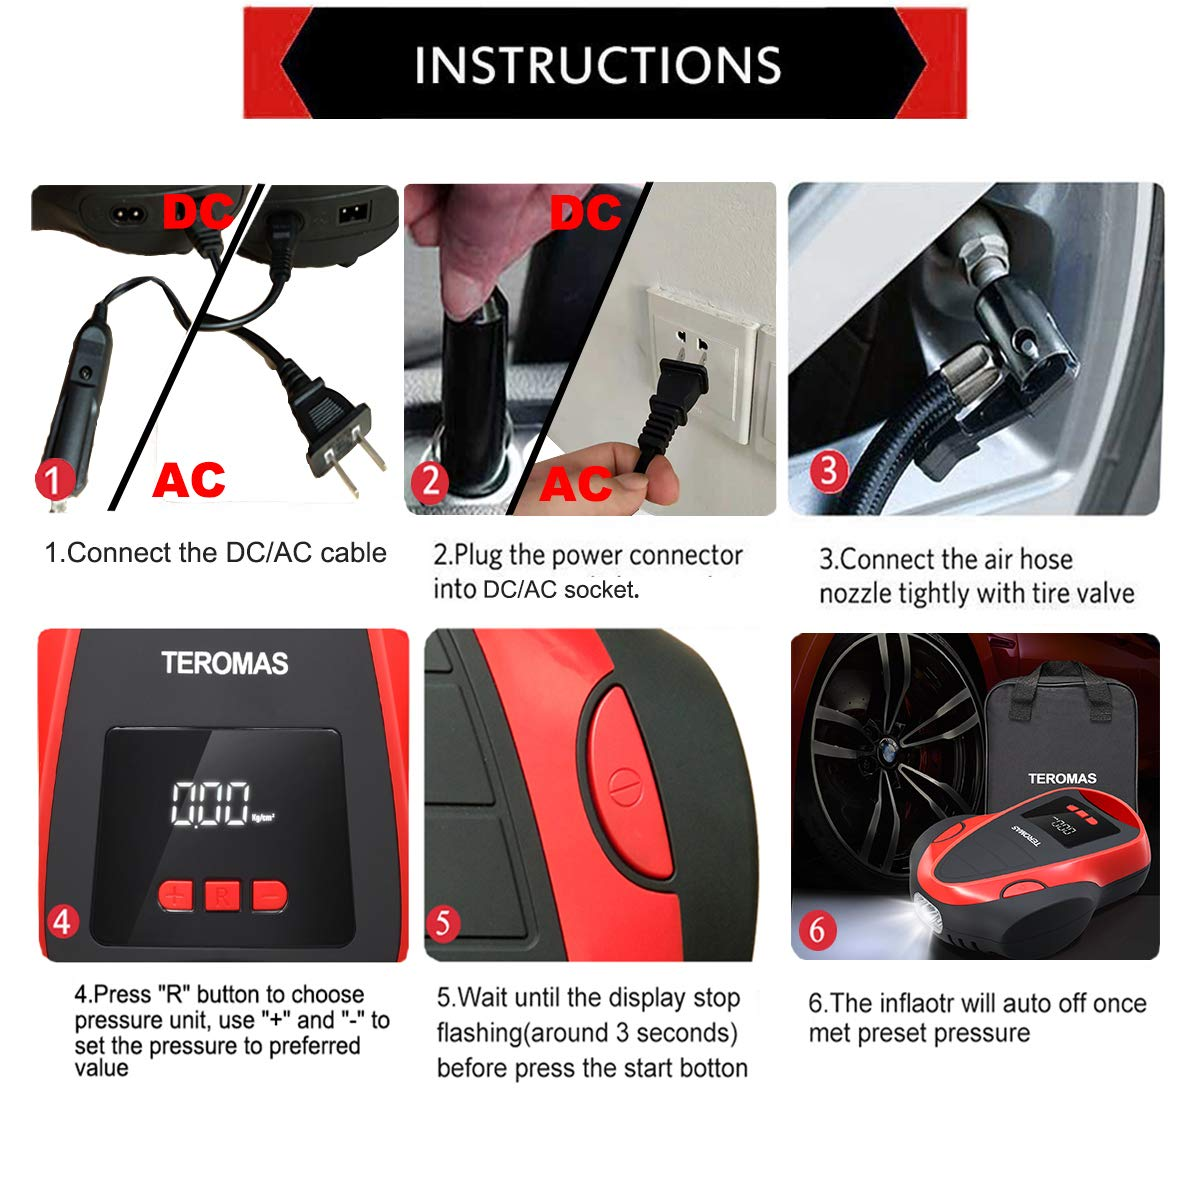 TEROMAS Tire Inflator Air Compressor Portable DC//AC Air Pump for Car Tires 12V DC and Other Inflatables at Home 110V AC Digital Electric Tire Pump with Pressure Gauge